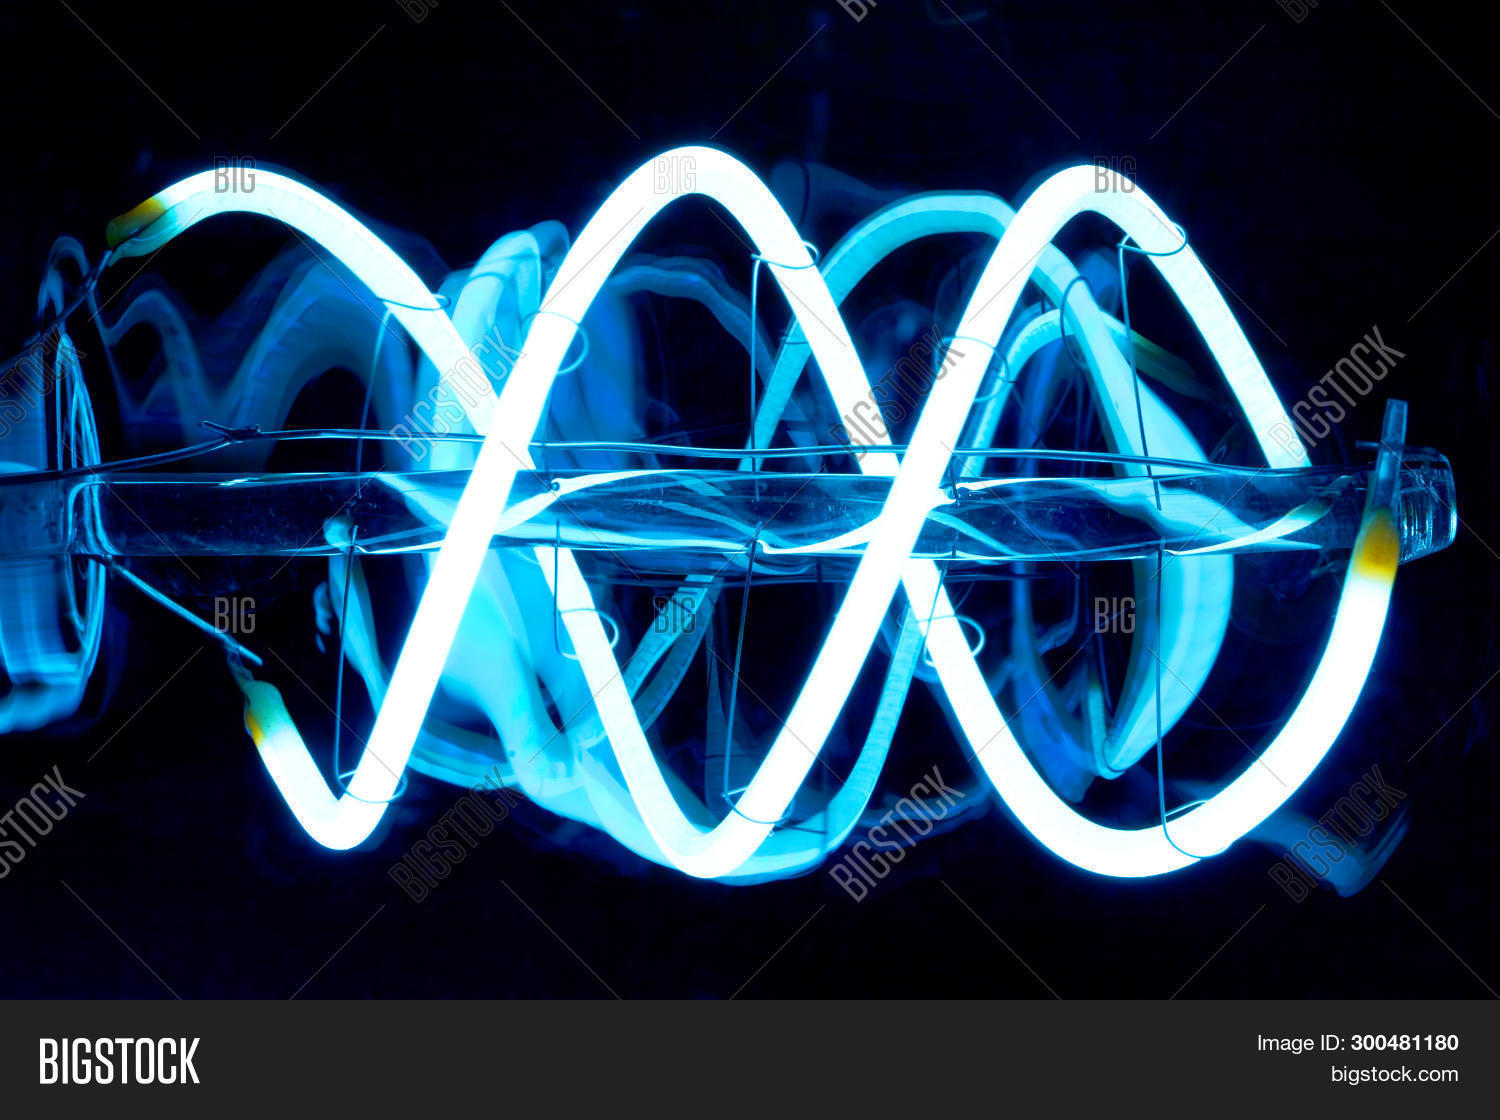 Energie,Filament,LED,Light,Light-emitting,blue,bright,close-up,dark,design,detail,diode,ecological,ecology,economical,electric,electrical,electronics,energy,engineering,helix,industry,lamp,lighting,modern,pear,pistons,semiconductor,silver,source,spiral,technology,white